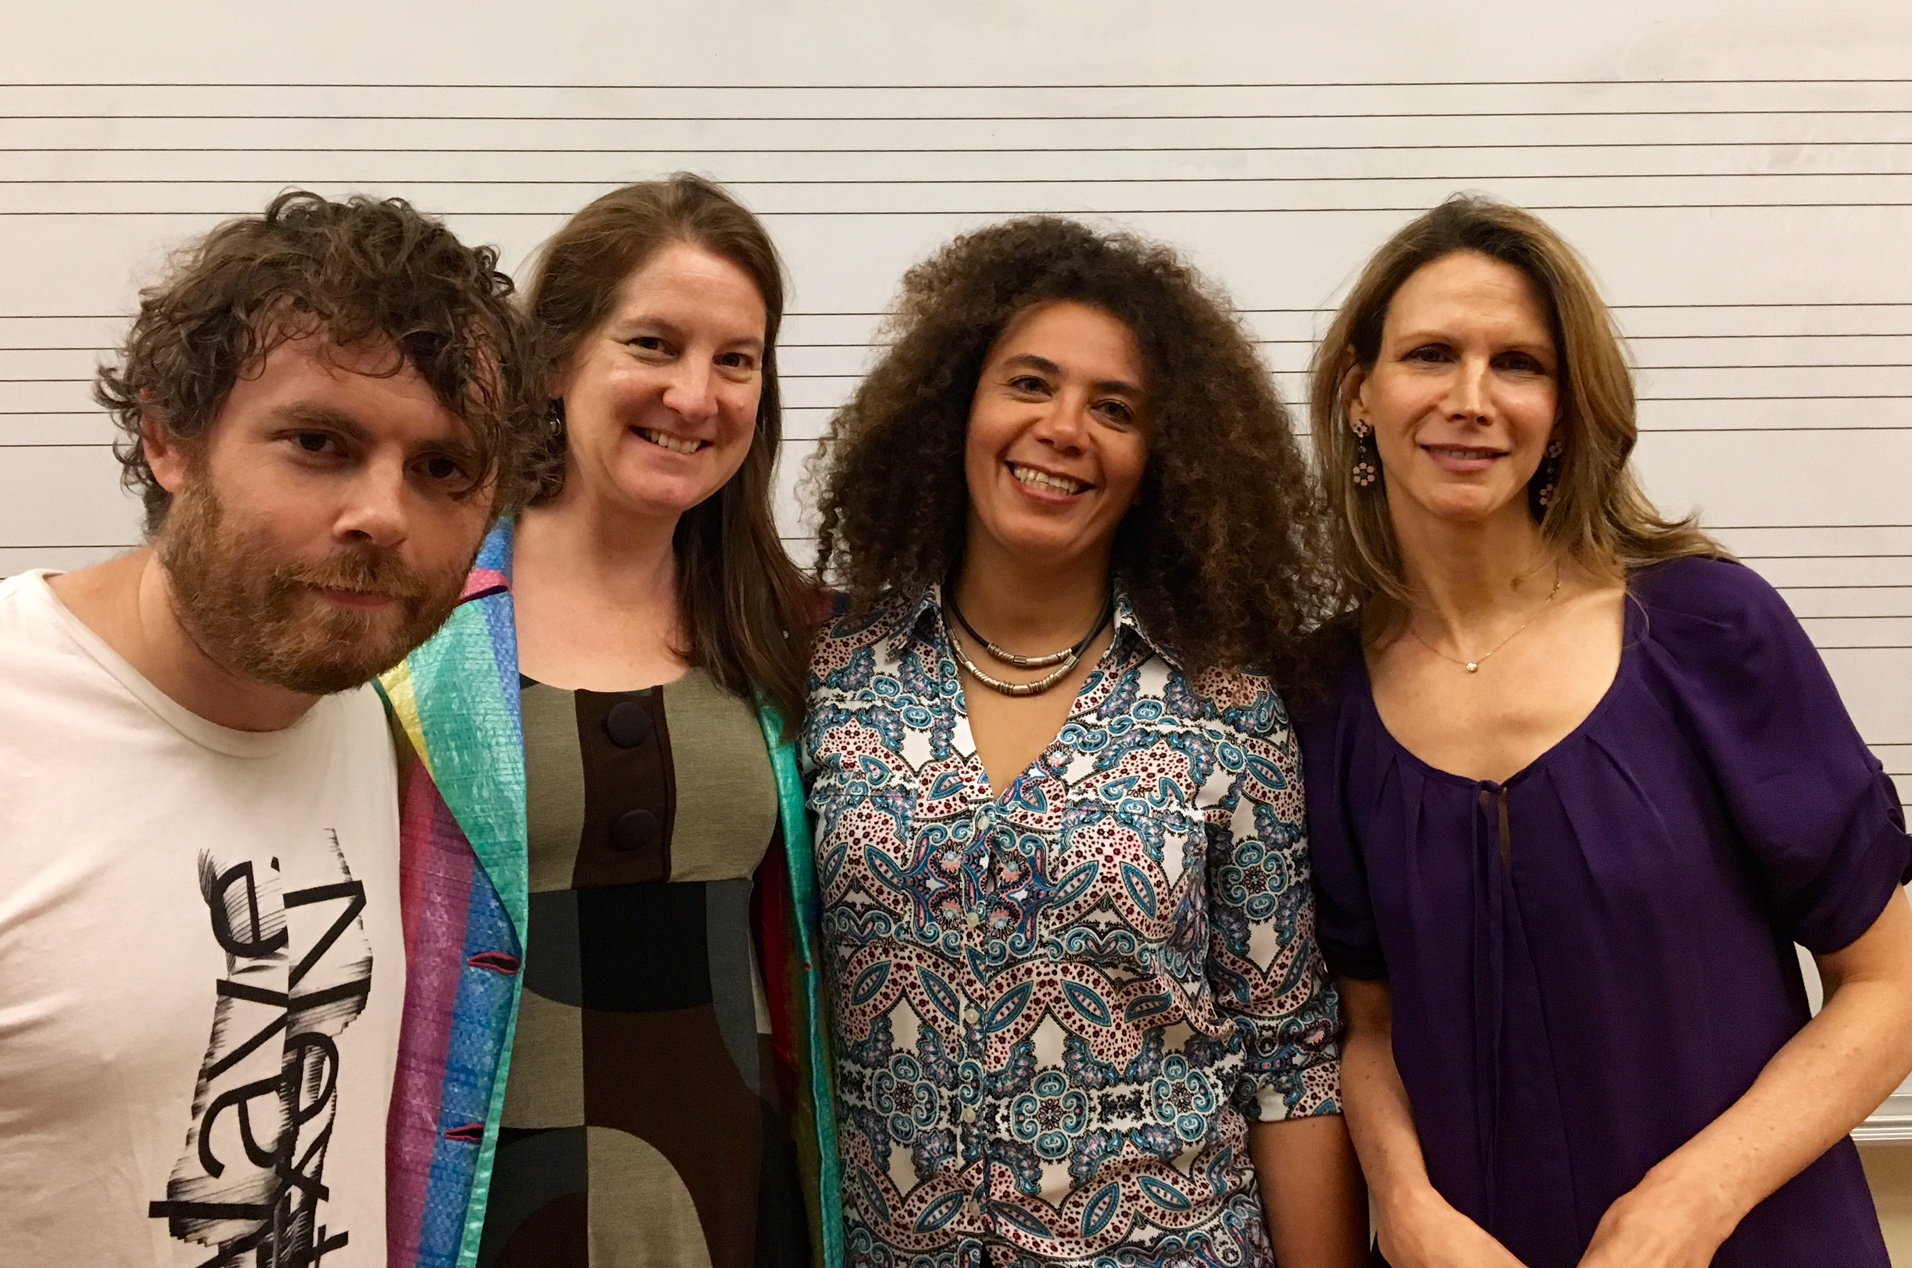 Composer Gabriel Kahane, SF Girls Chorus Artistic Director Lisa Bielawa, SFGC Music Director and Principal Conductor Valérie Sainte-Agathe, and Brooklyn Youth Chorus Artistic Director Dianne Berkun-Menaker